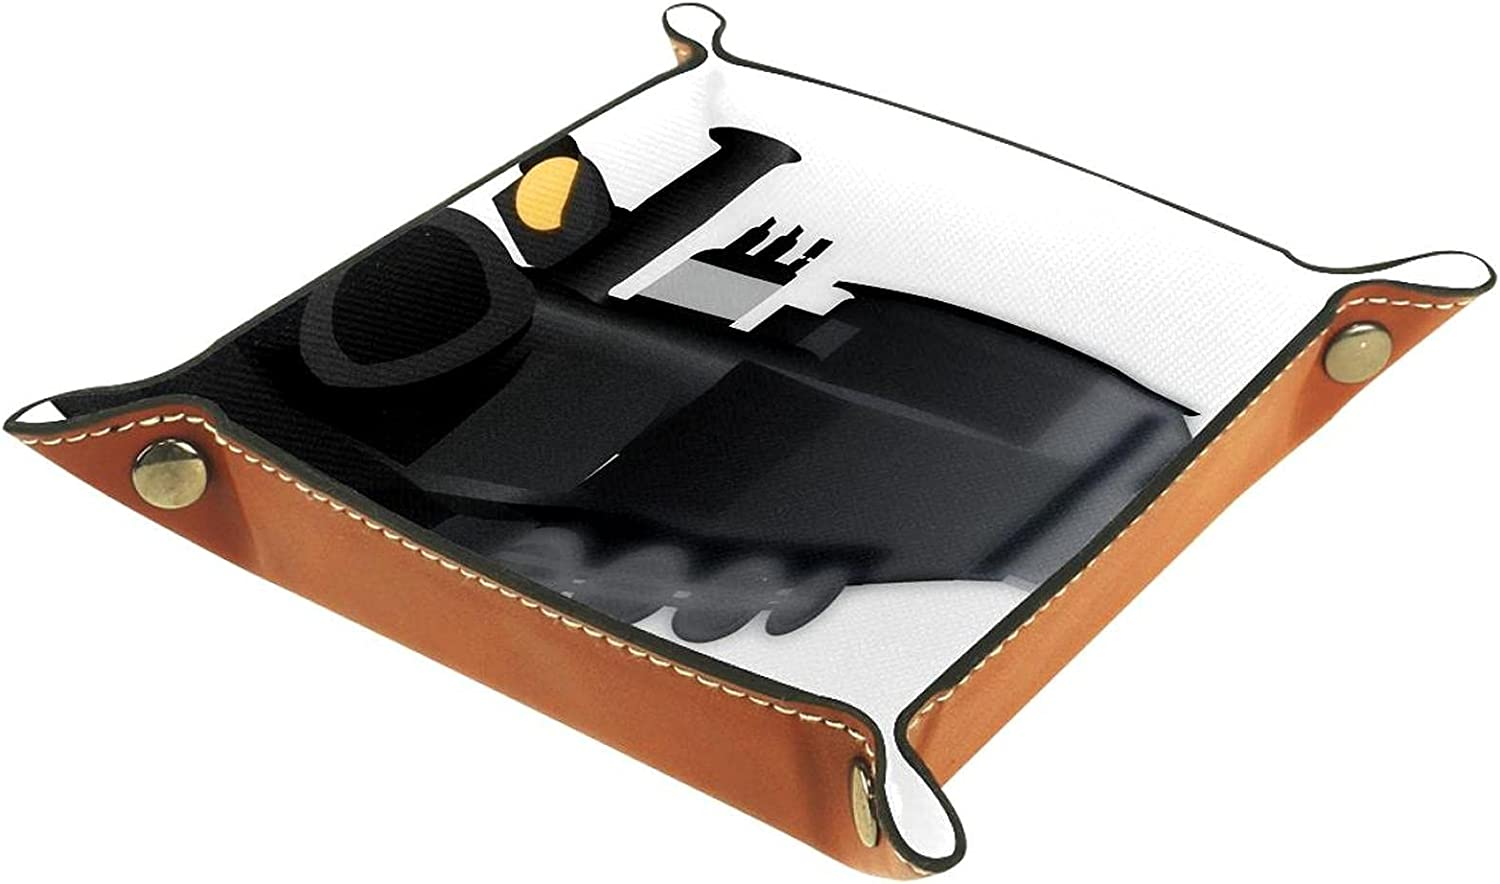 LANIY Max 61% OFF Folding PU Leather Dice Challenge the lowest price of Japan ☆ Rolling Game Box Tray Holder